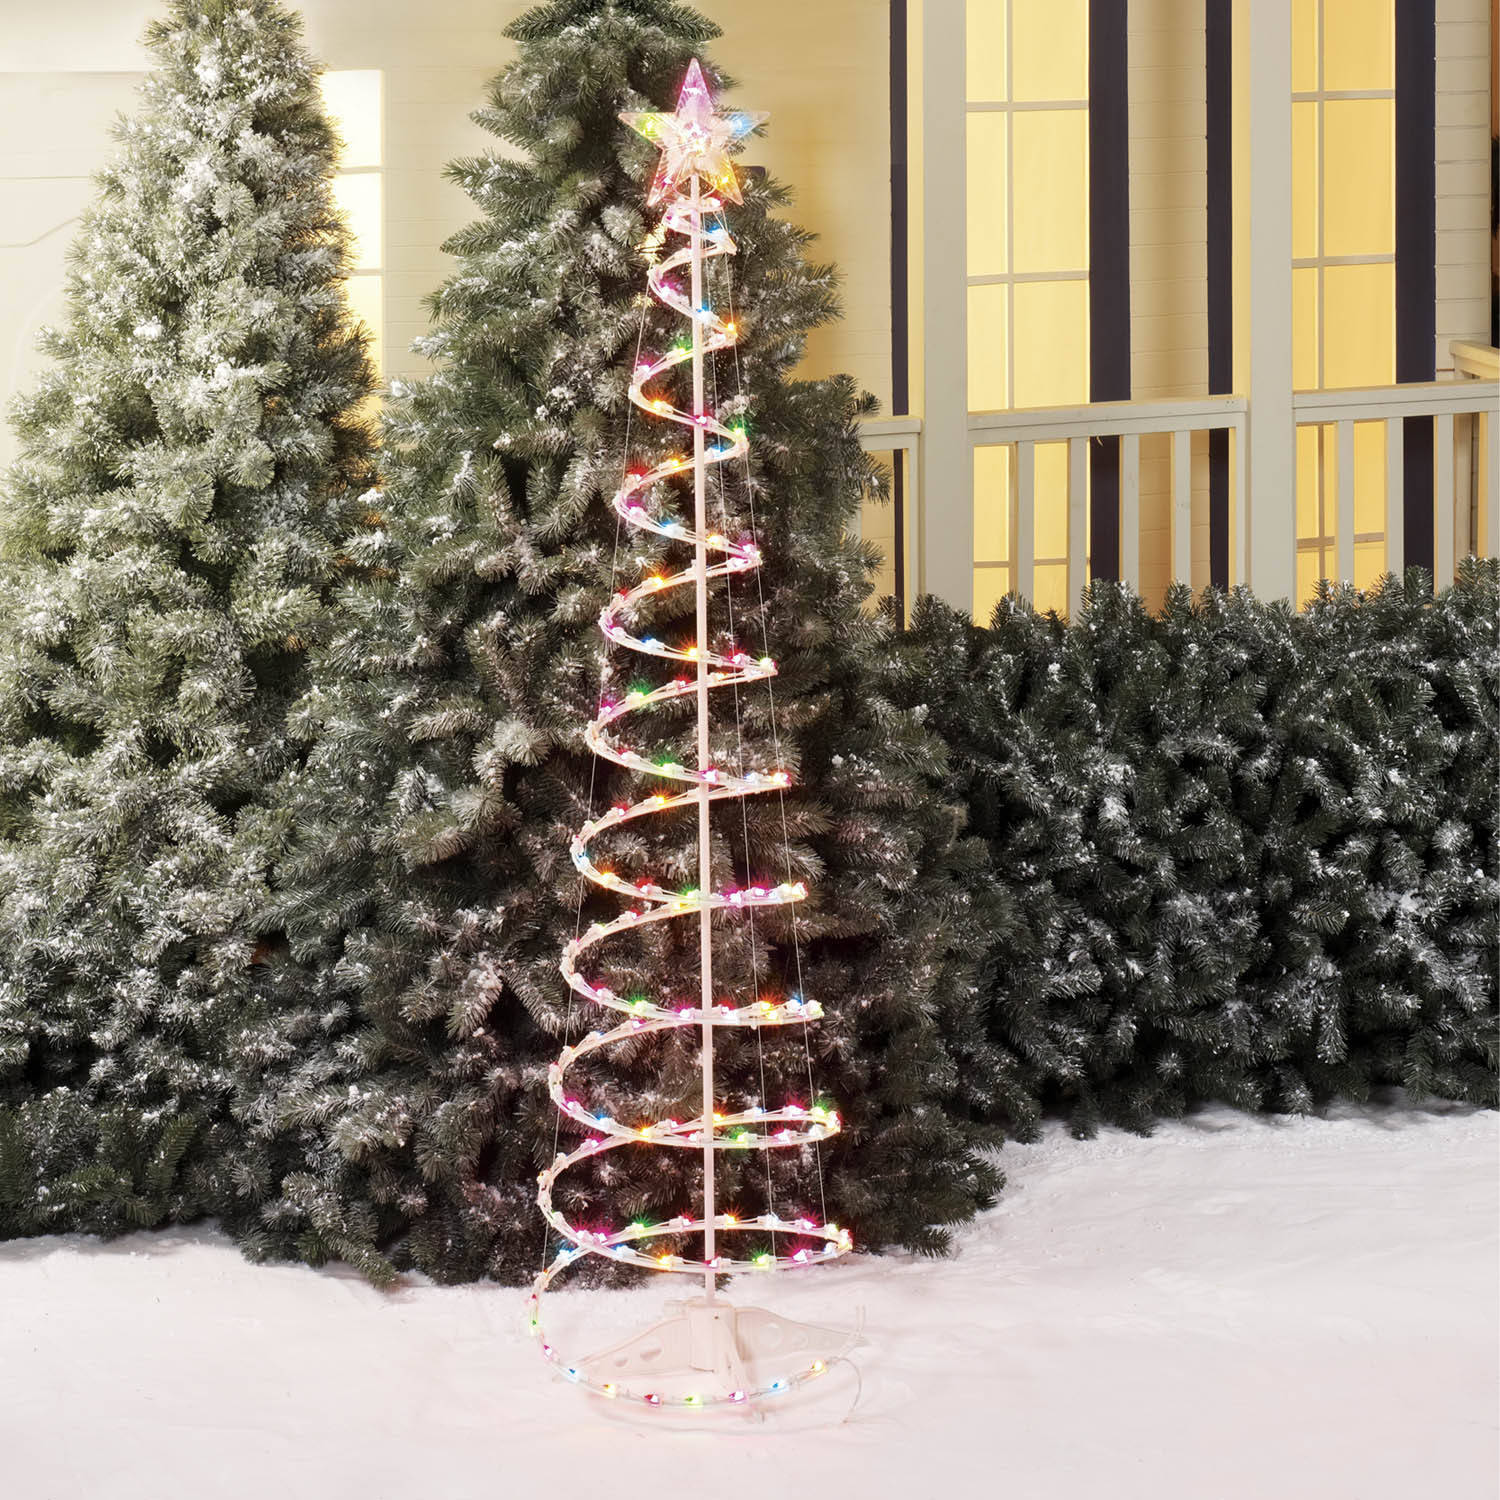 Holiday Time 6' Multi-Color Spiral Tree Light Sculpture